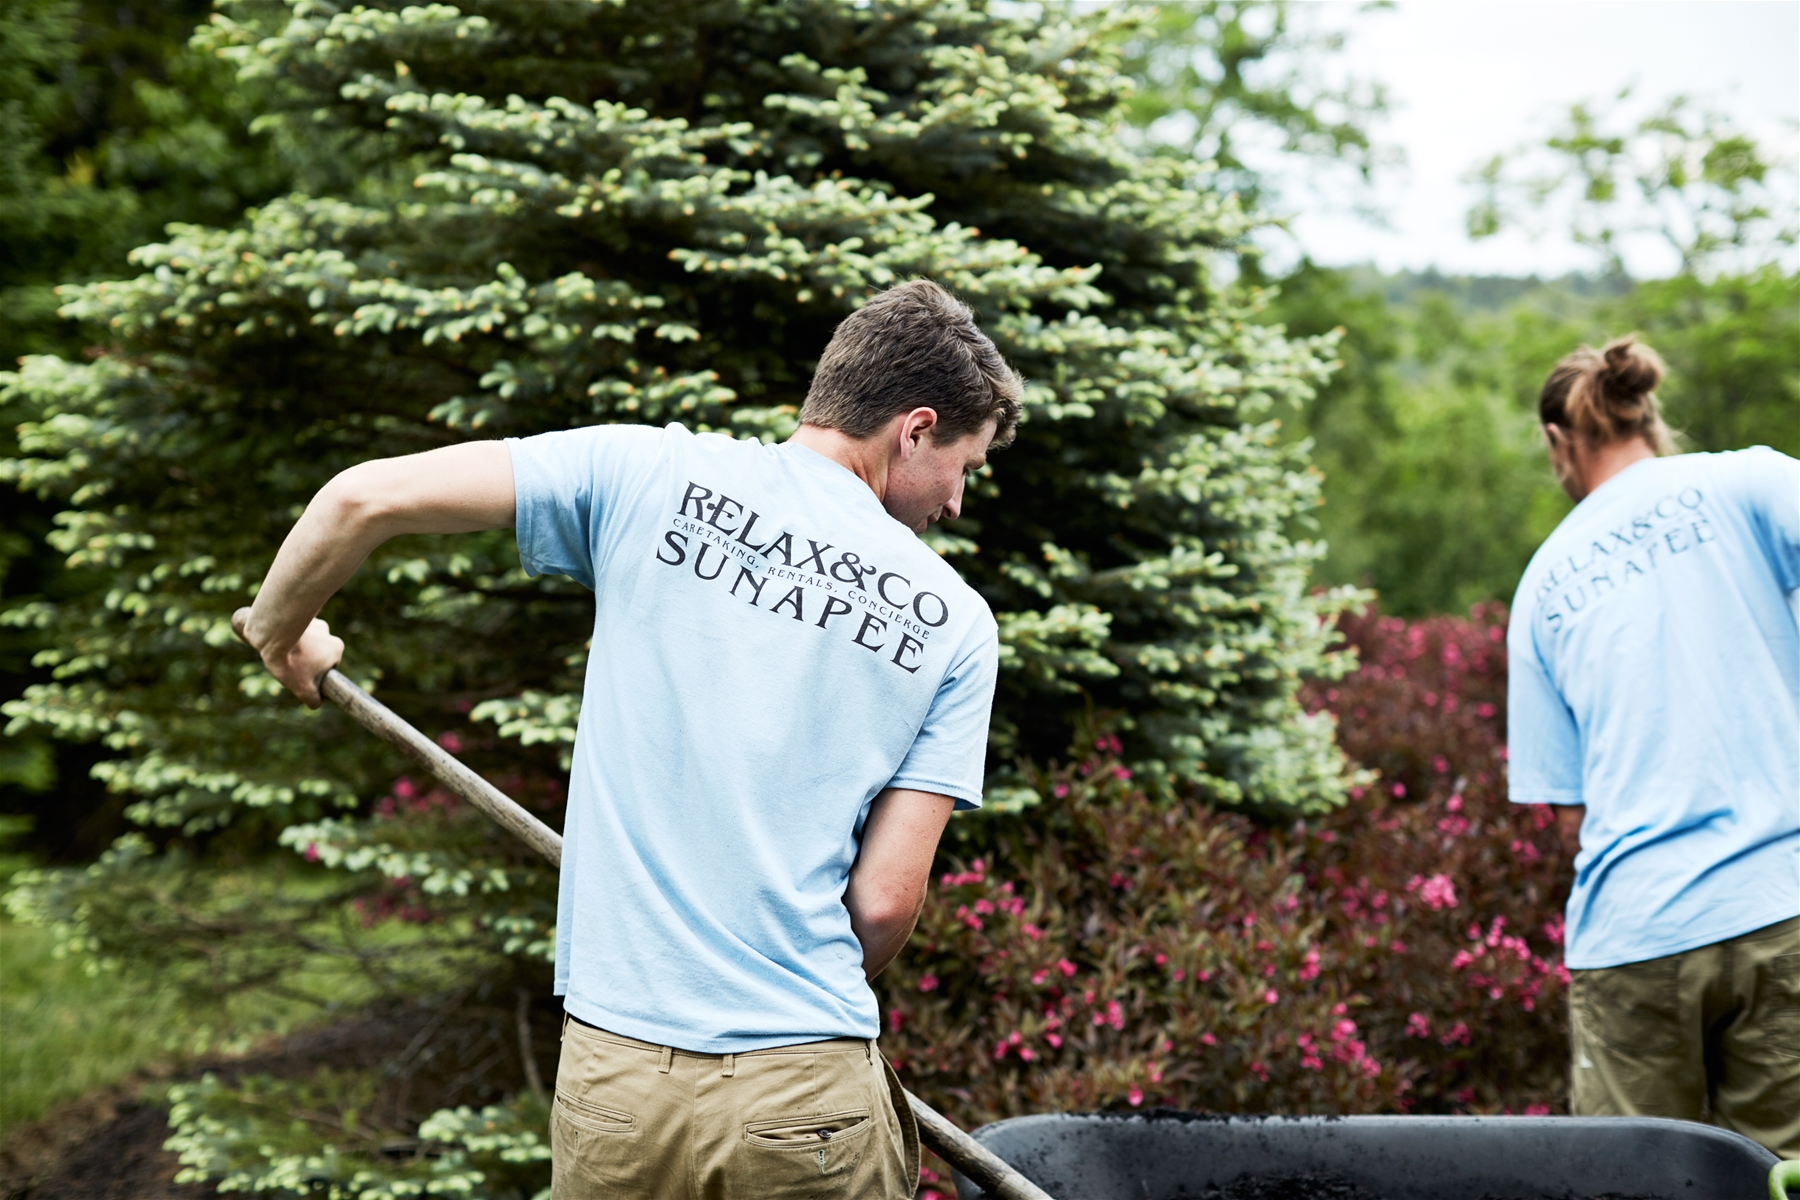 Sunapee Vacation Property Landscaping & Hardscaping Services